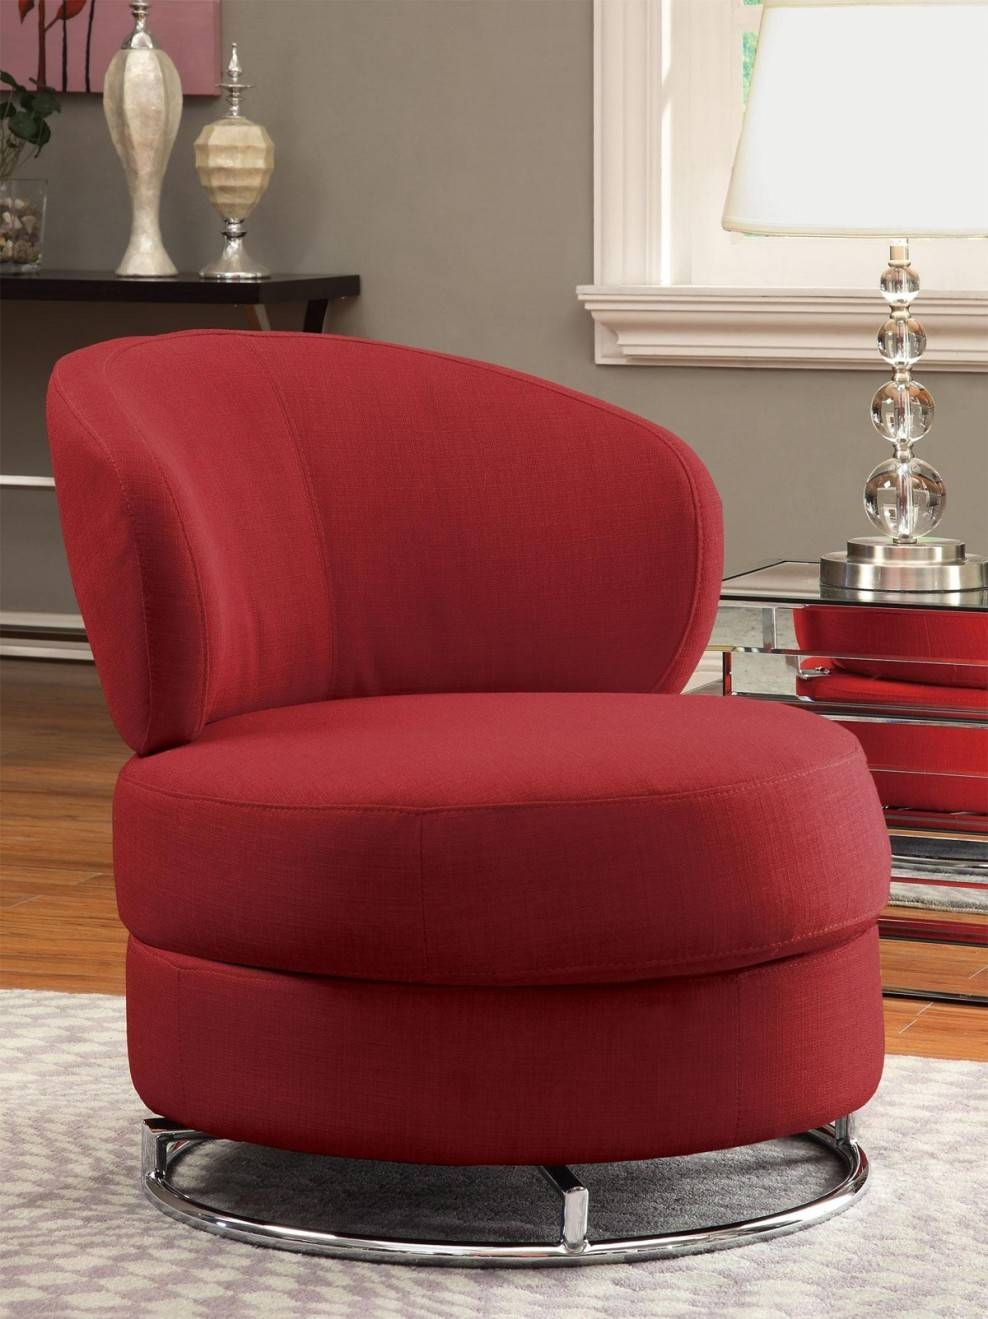 Round Living Room Chair Living Room Design And Living Room Ideas within Circle Sofa Chairs (Image 19 of 30)